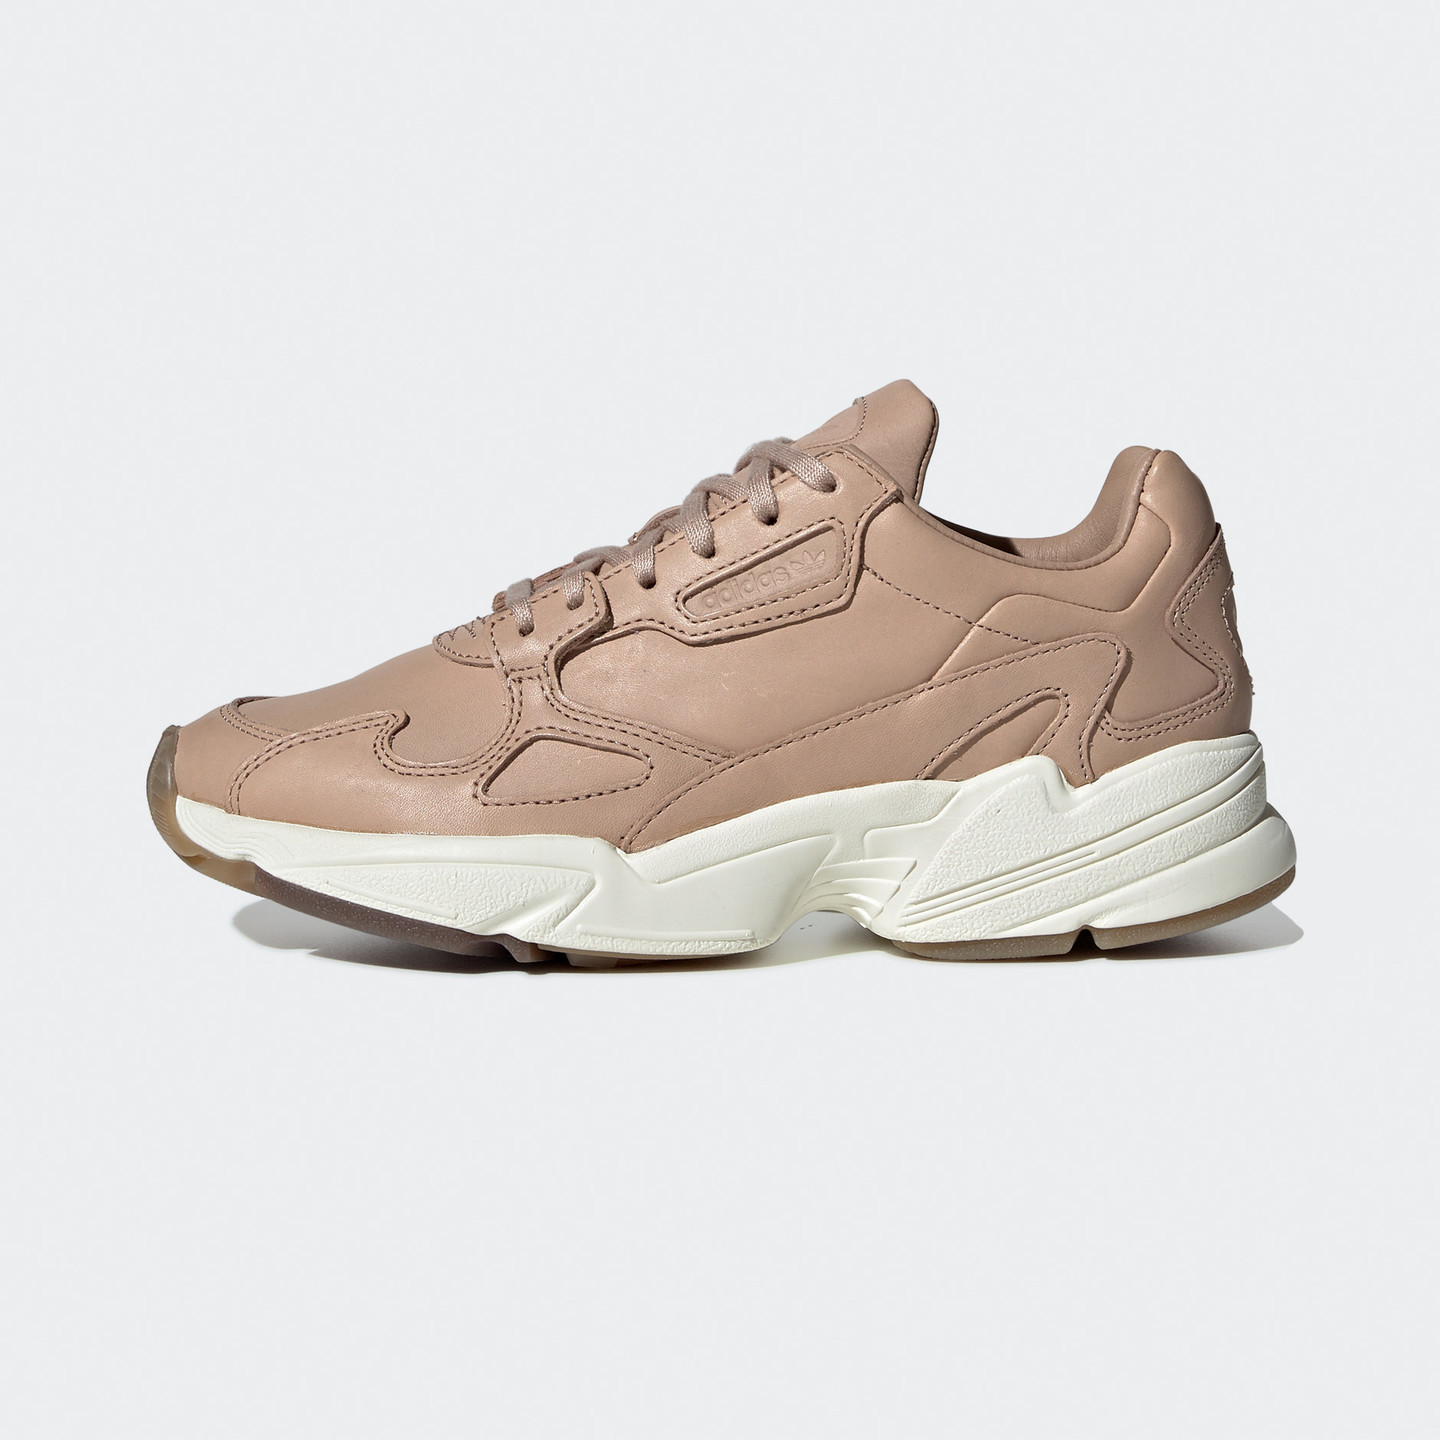 Adidas Falcon W Leather Ash Pearl / Off White DB2714